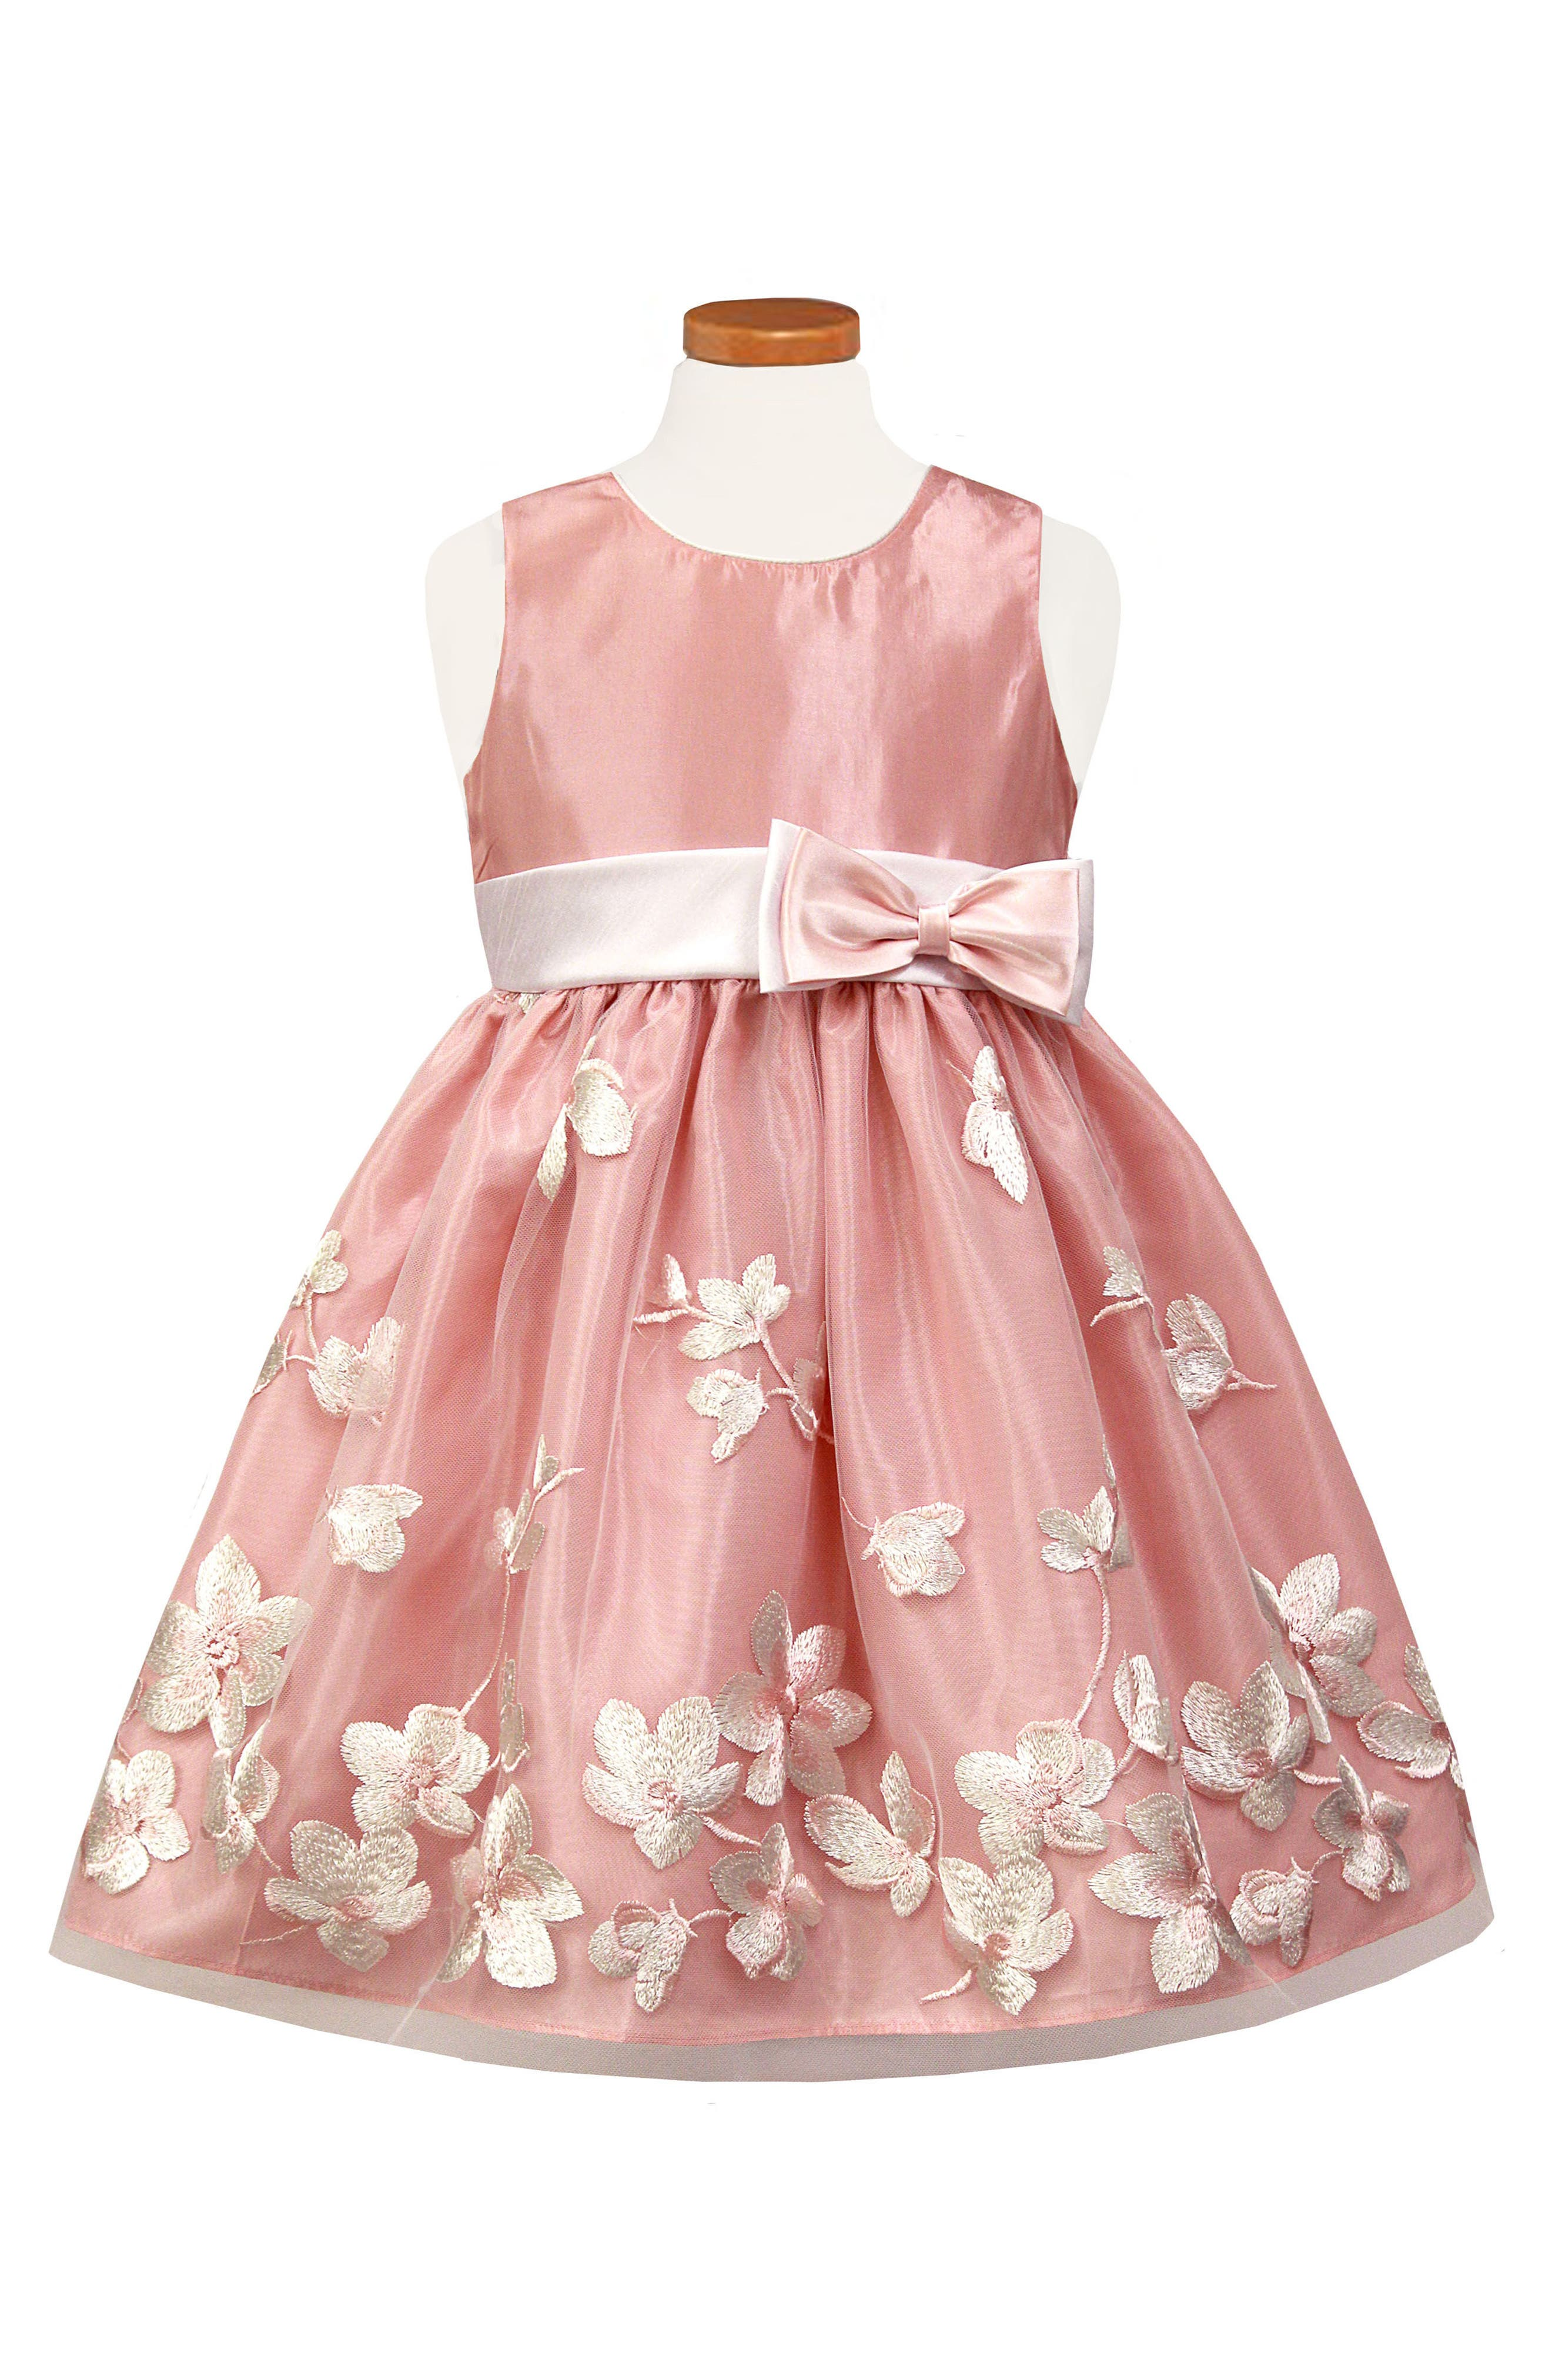 Sorbet Embroidered Floral Tulle Party Dress (Toddler Girls, Little Girls & Big Girls)